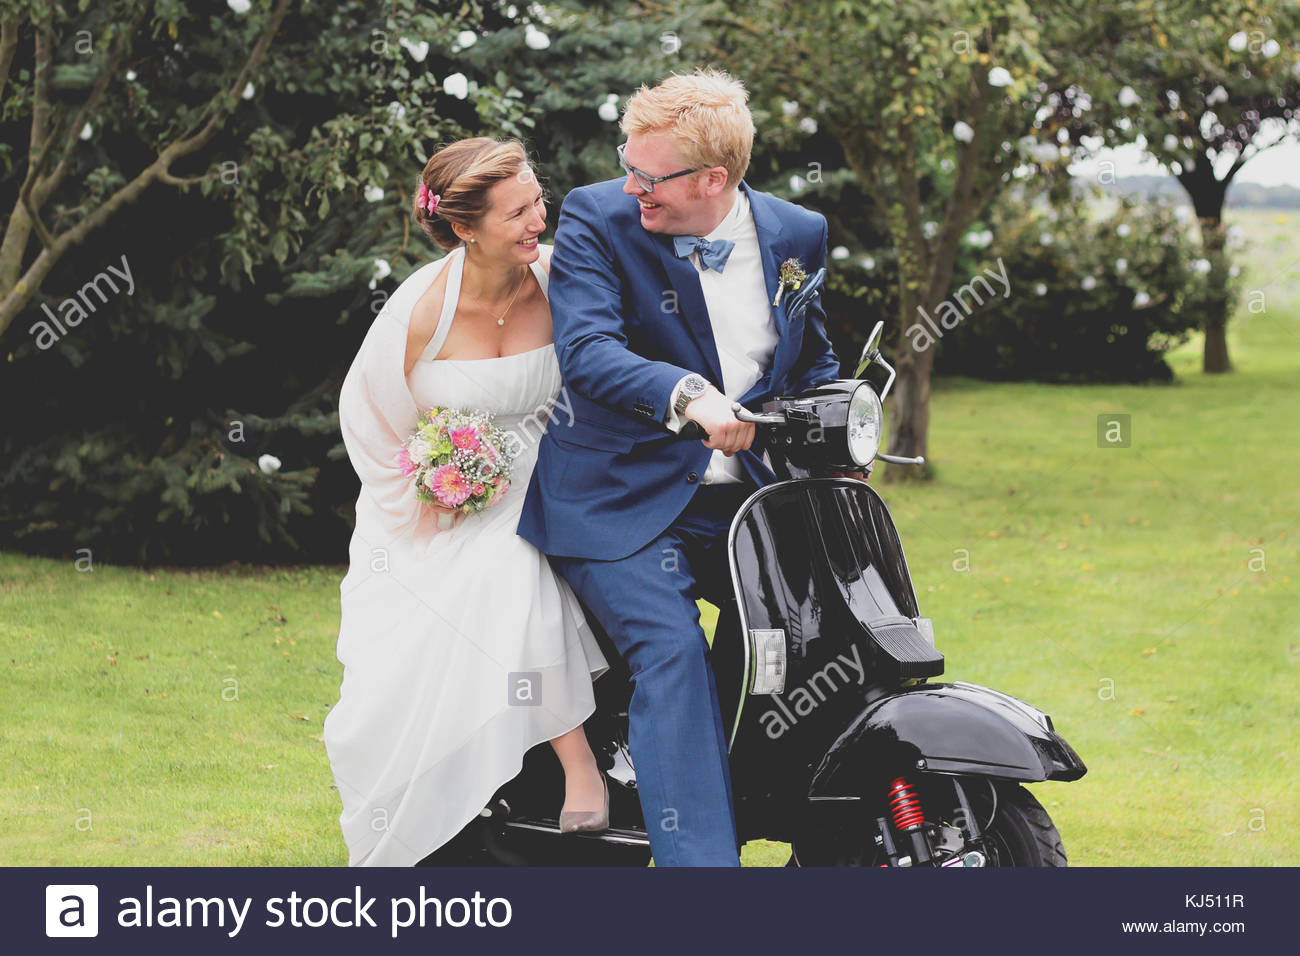 Happy couple on a scooter on their wedding day - Stock Image